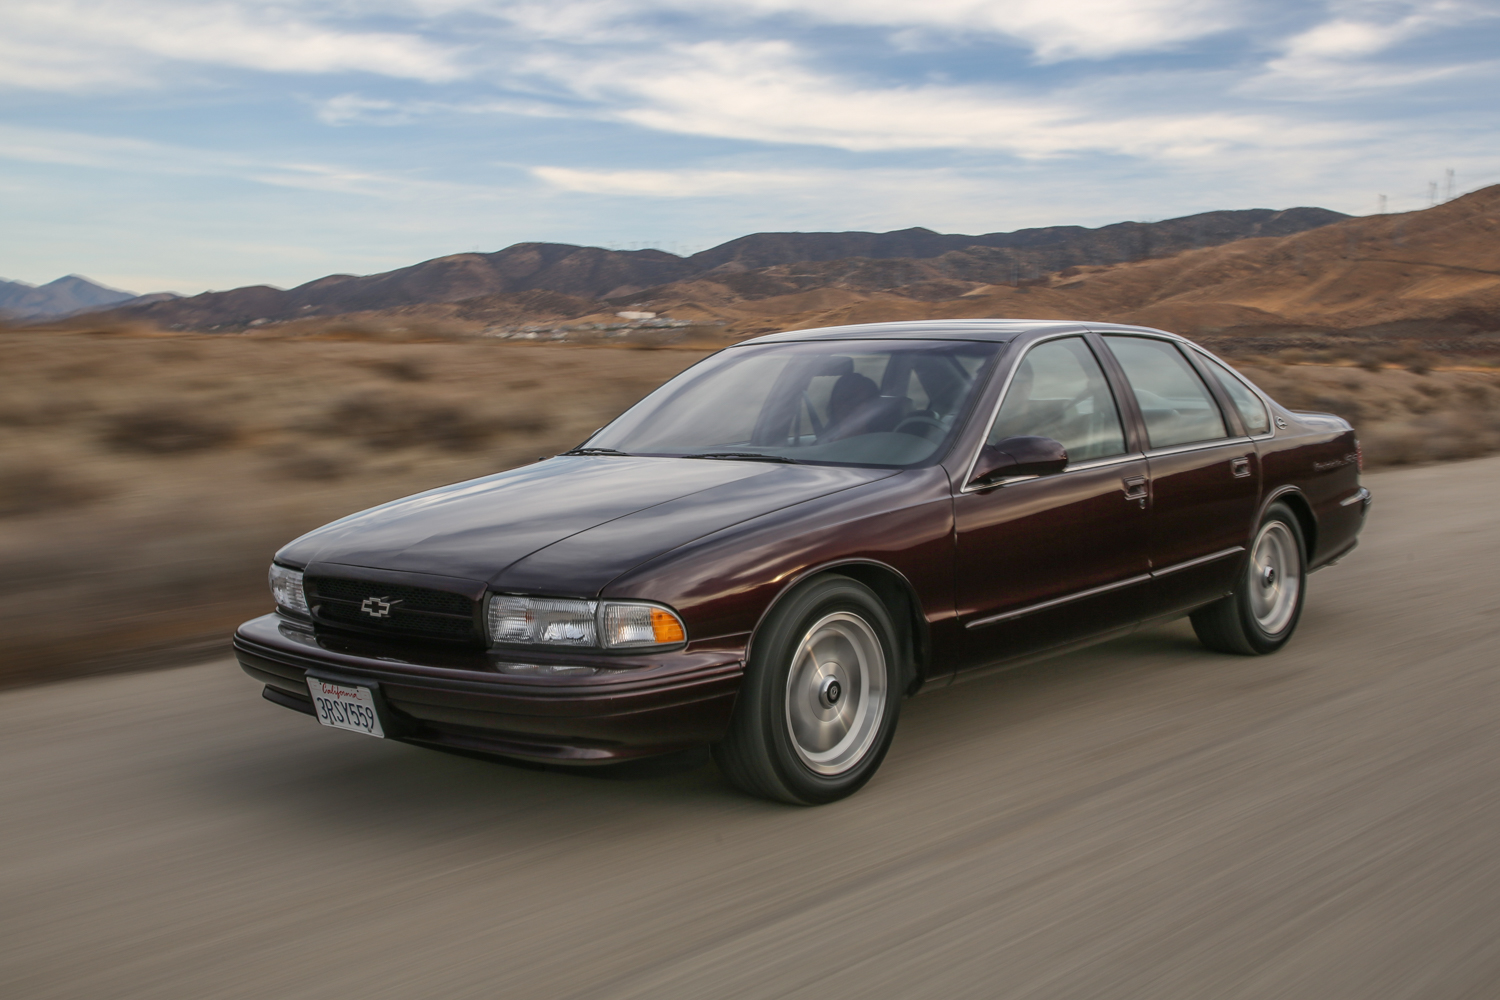 This 1996 Impala SS is one big Chevy thumbnail